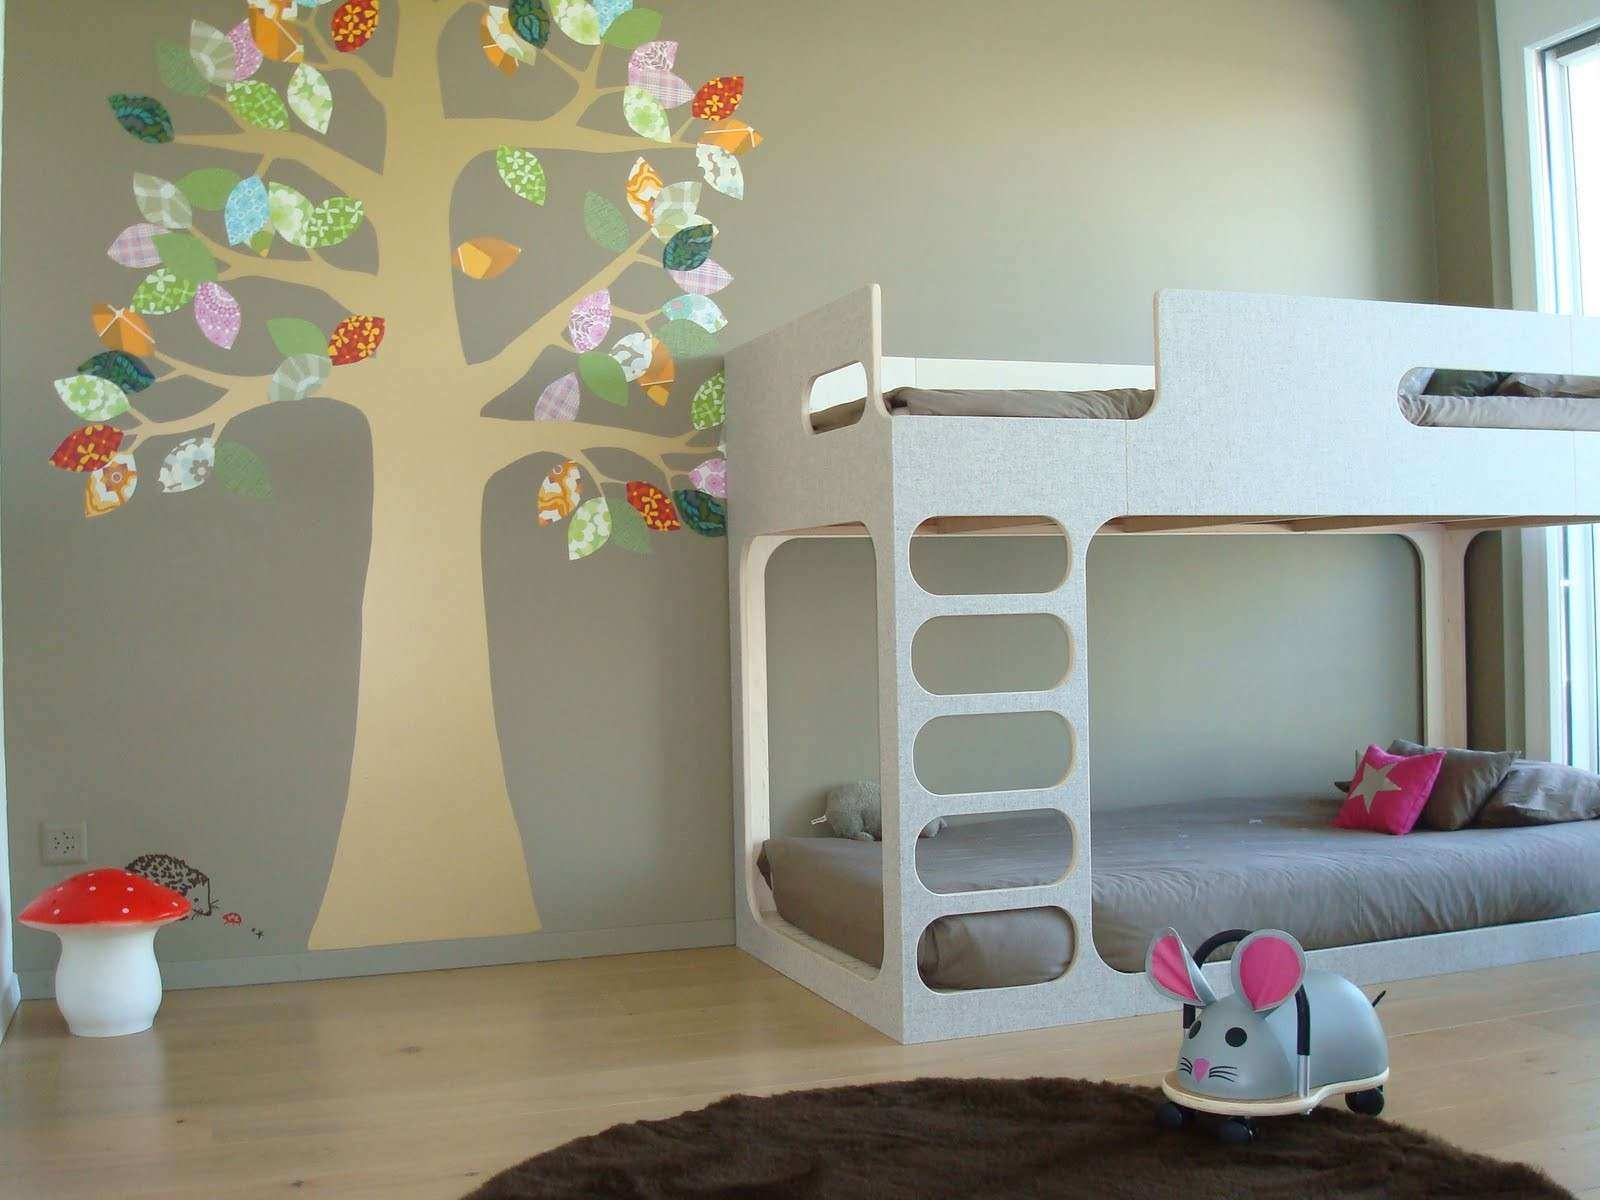 Wall Pictures For Bedroom Awesome Childrens Bedroom - Room Wallpaper Designs For Kids - HD Wallpaper